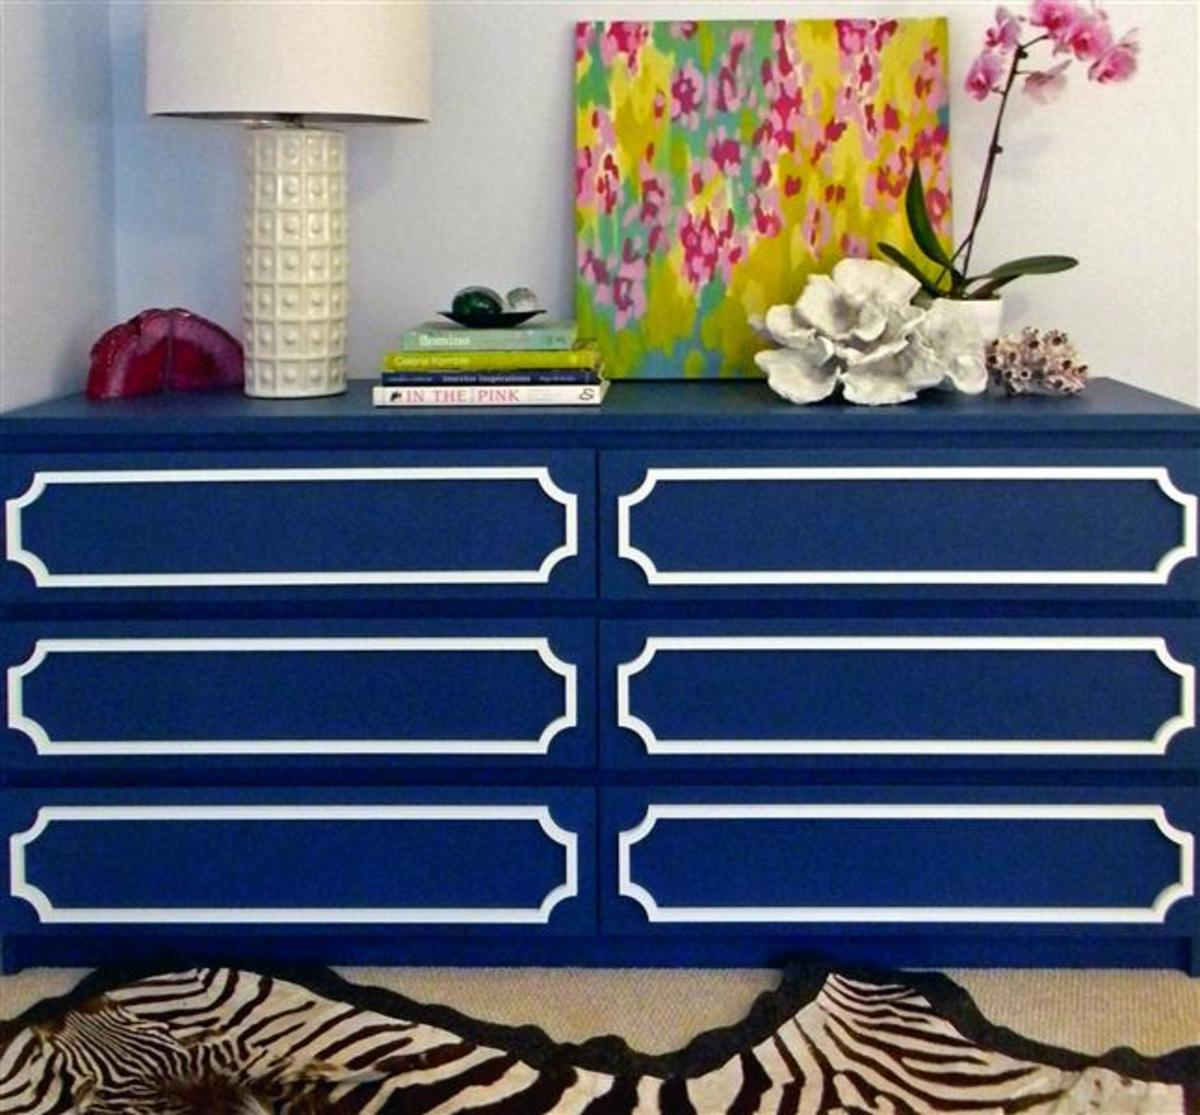 5 Ways to Customize Ikea Furniture